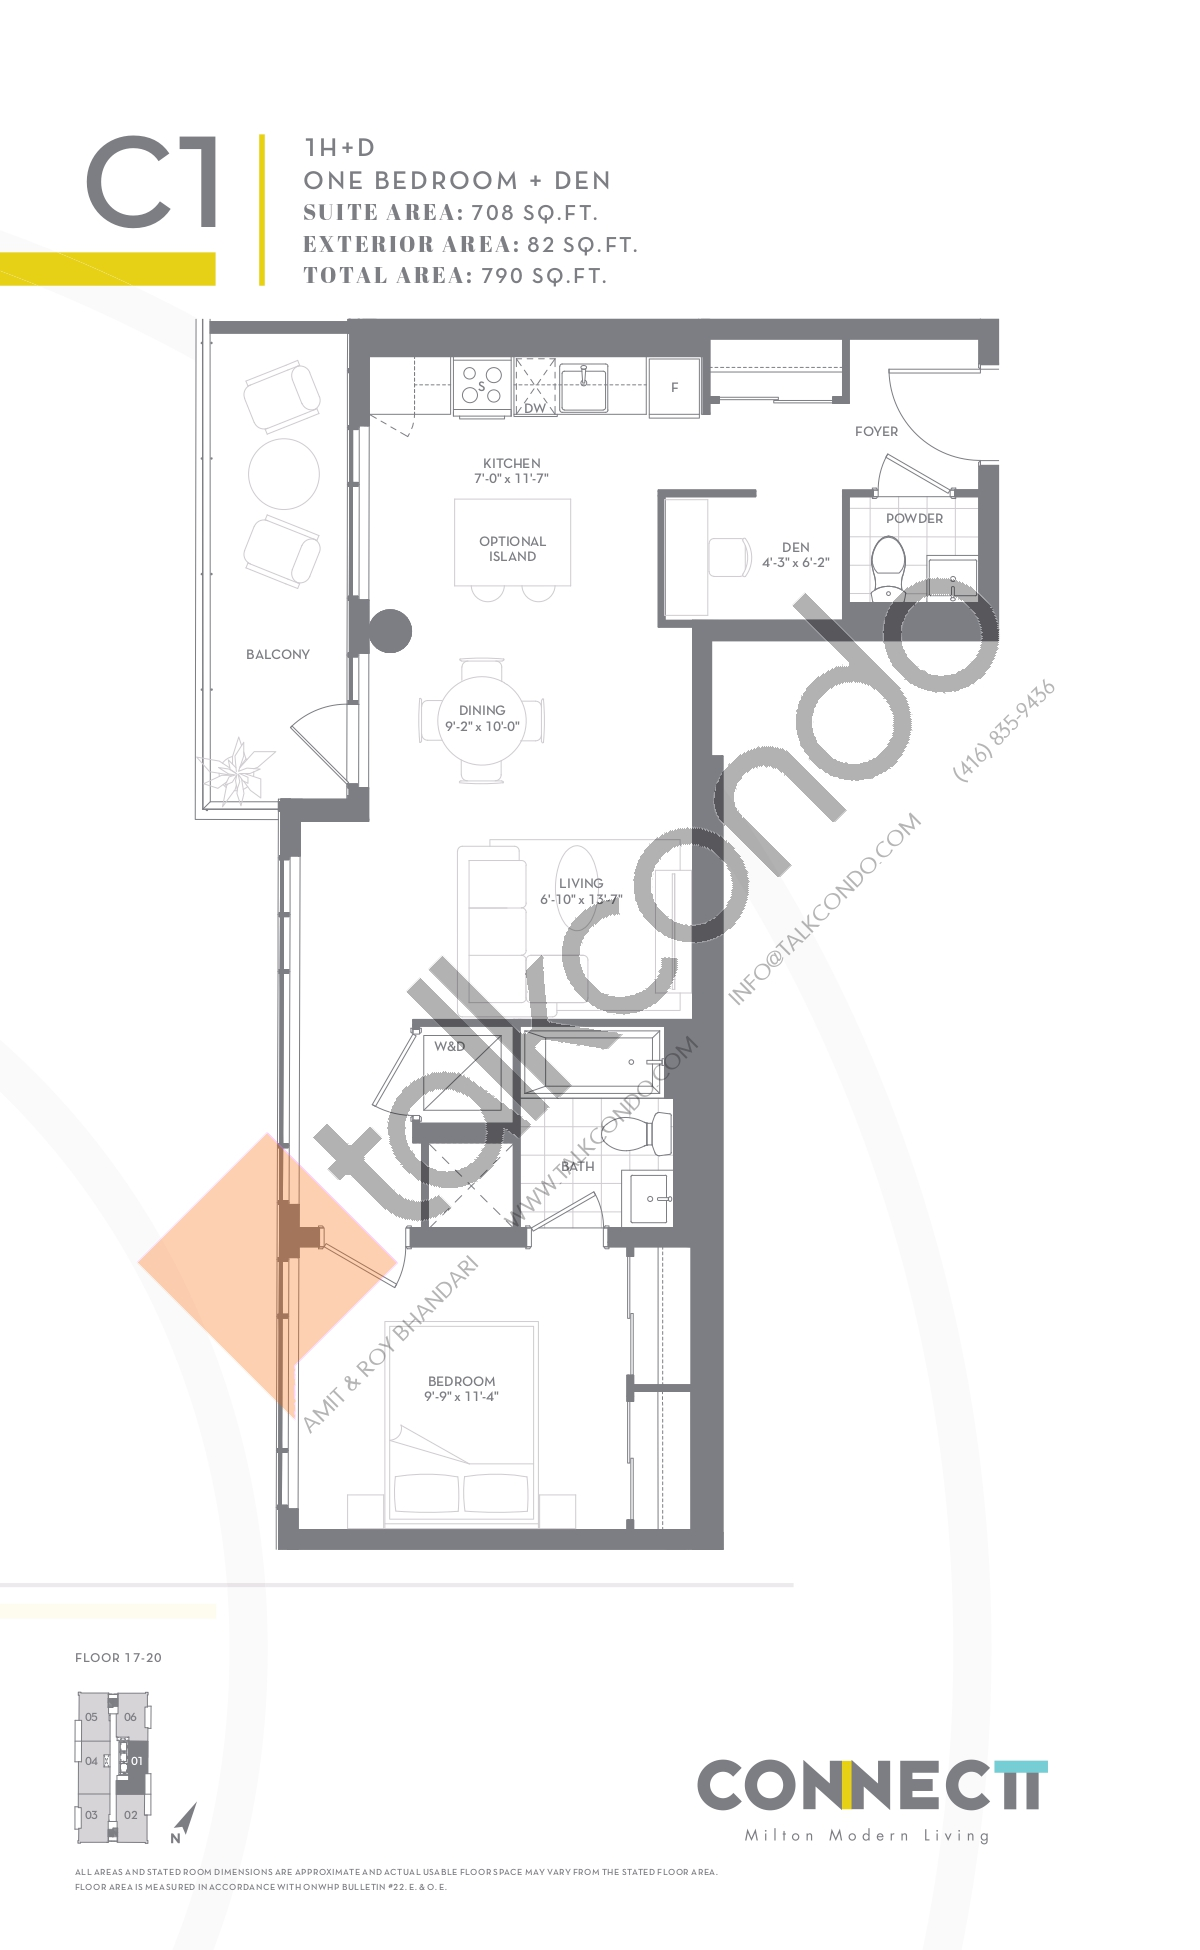 1H+D Floor Plan at Connectt Urban Community Condos - 708 sq.ft